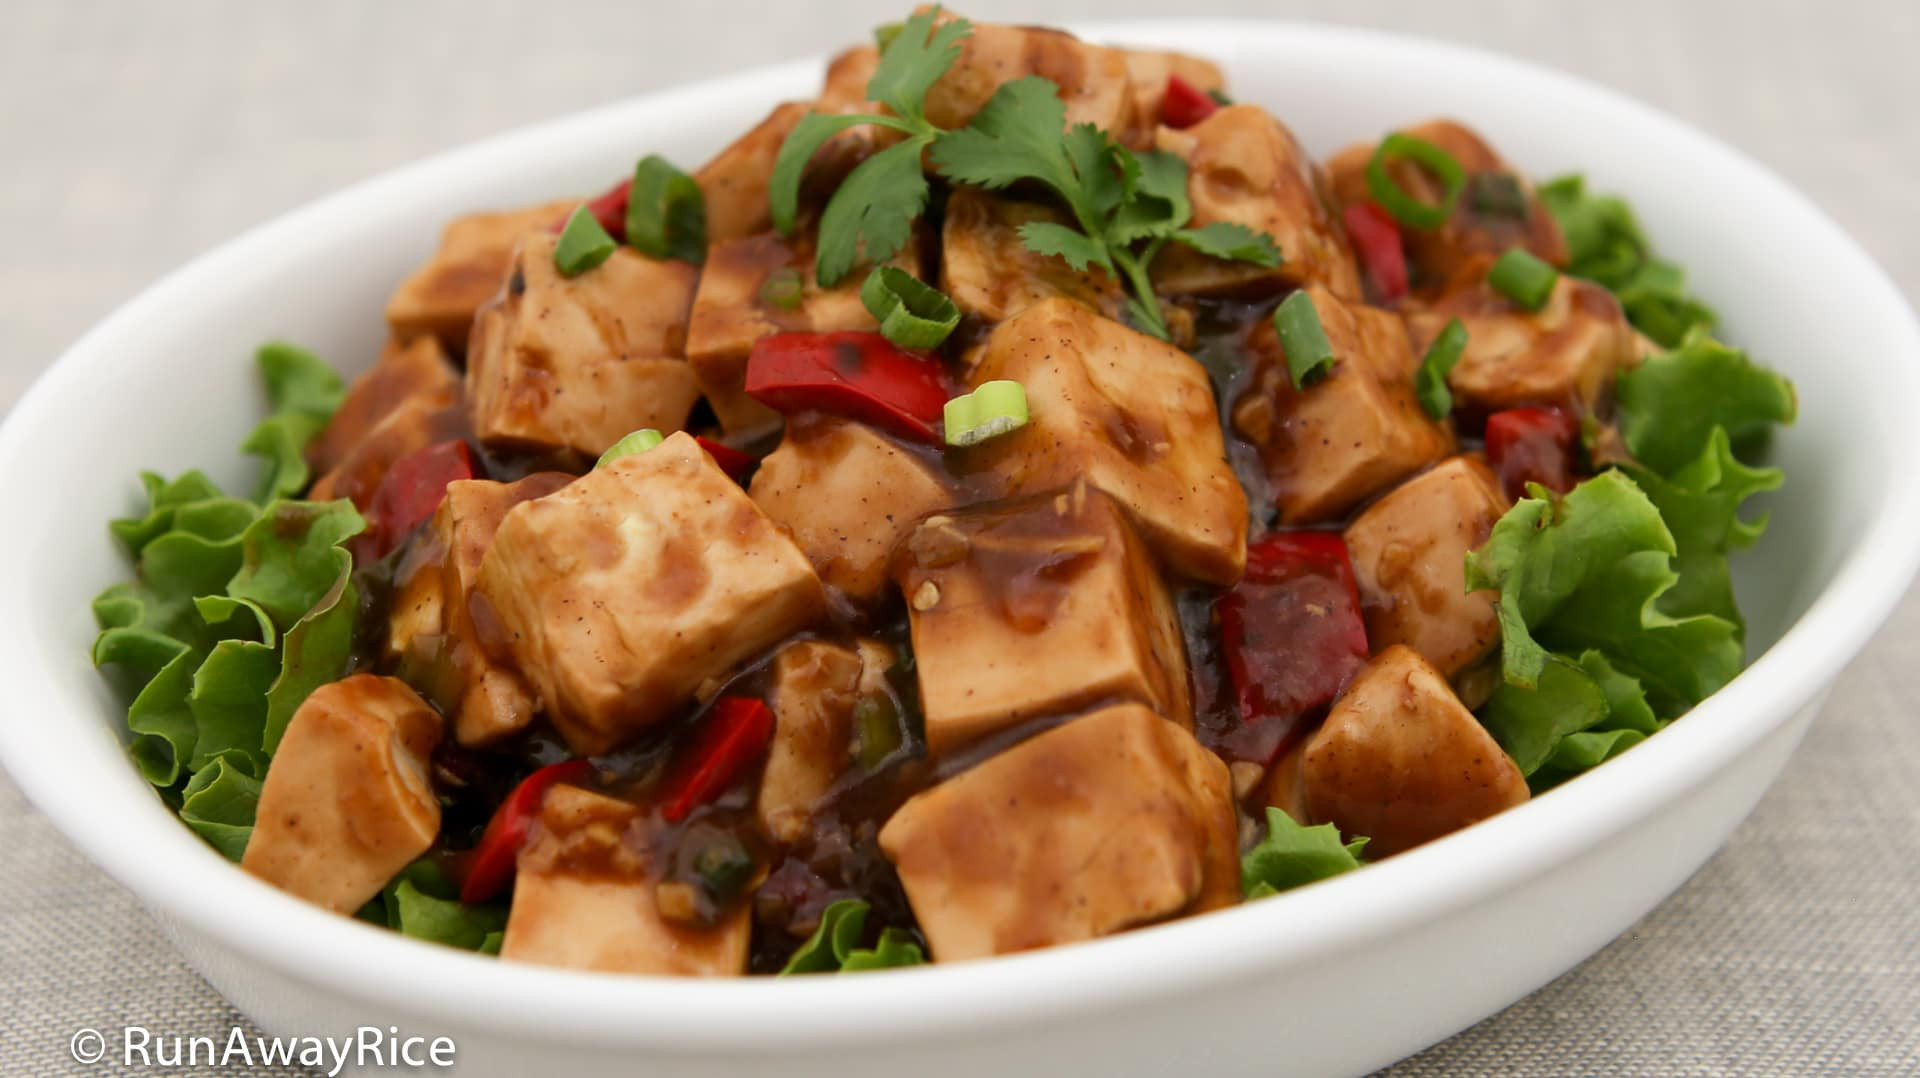 Tofu Sauce Recipes  Tofu in Black Bean Sauce Quick and Easy Recipe with Video